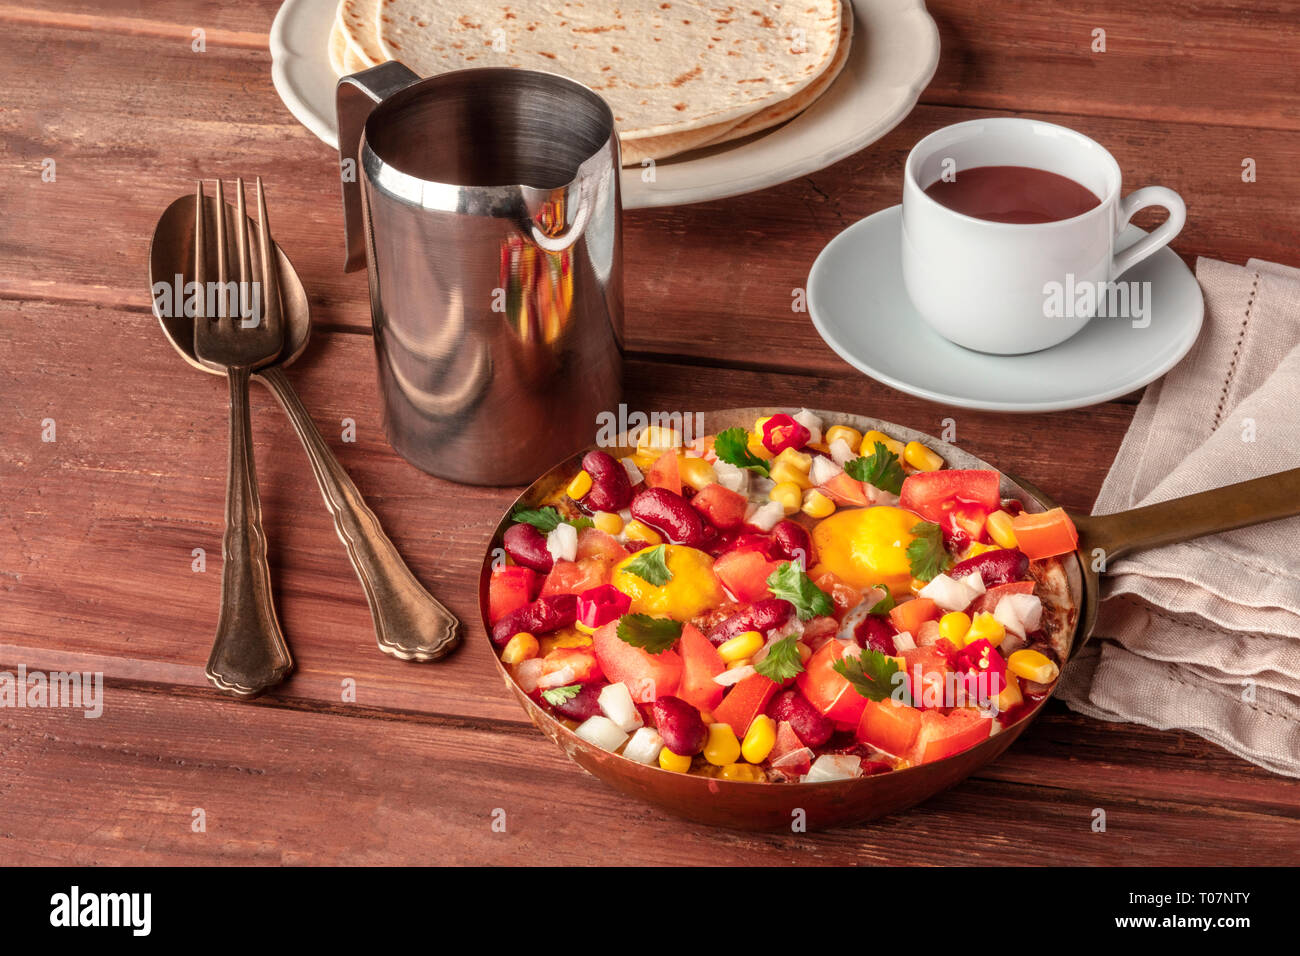 Mexican breakfast. Huevos rancheros, the fried eggs, with the pico de gallo salad, hot chocolate, and tortillas on a dark rustic wooden table - Stock Image